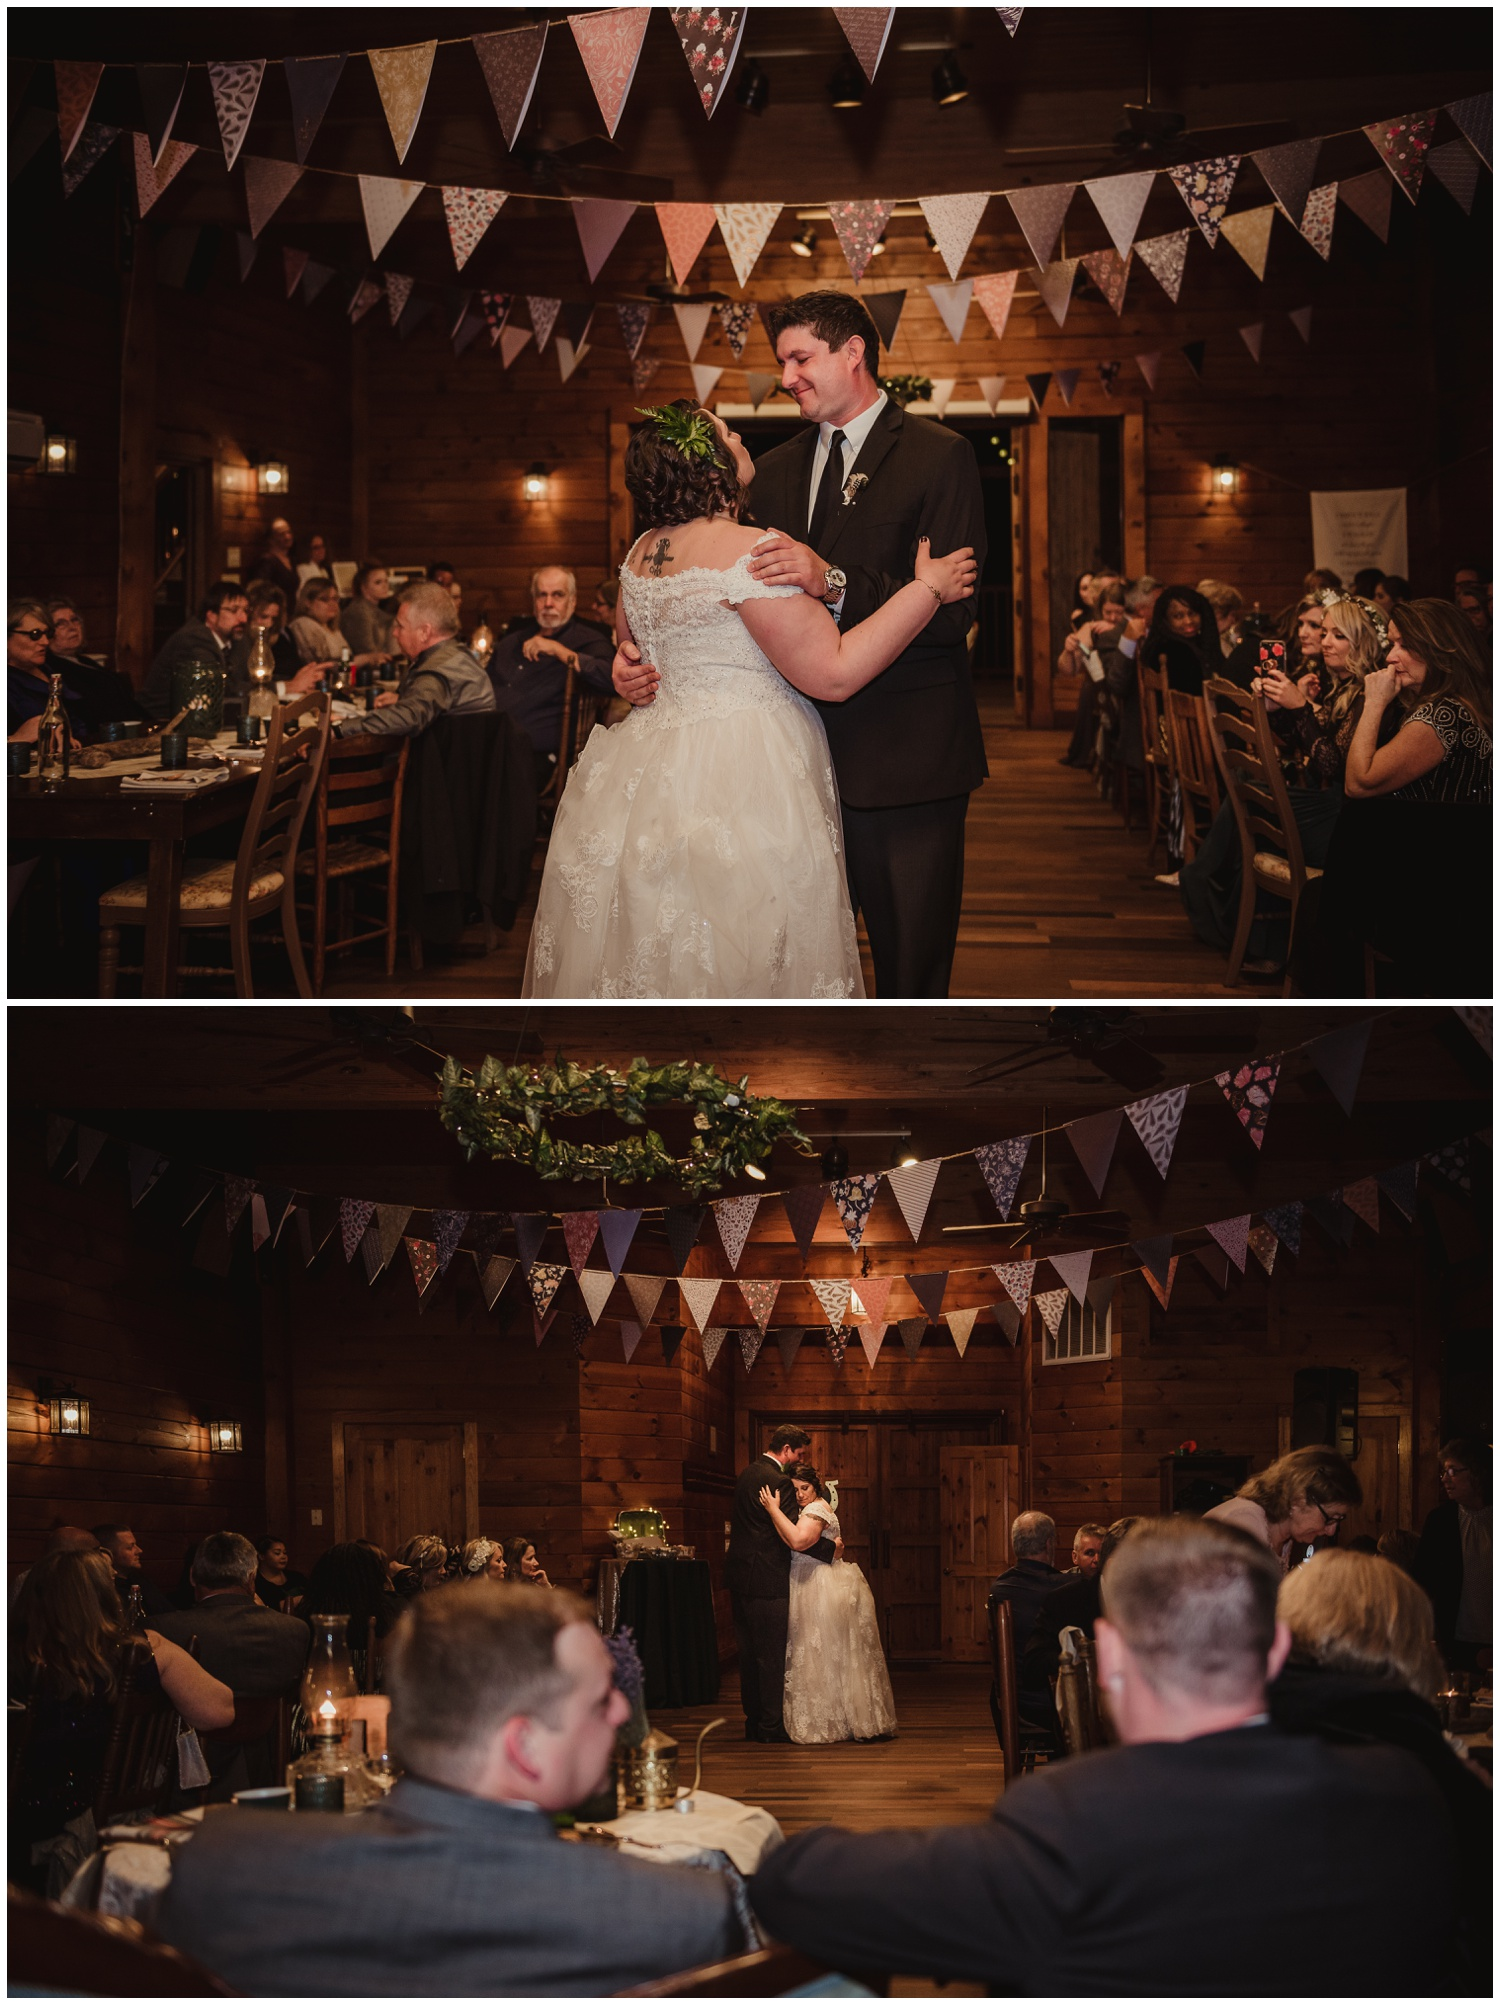 The bride dances with her older brother on her wedding day at the Barn at Valhalla in Chapel Hill, taken by Rose Trail Images.